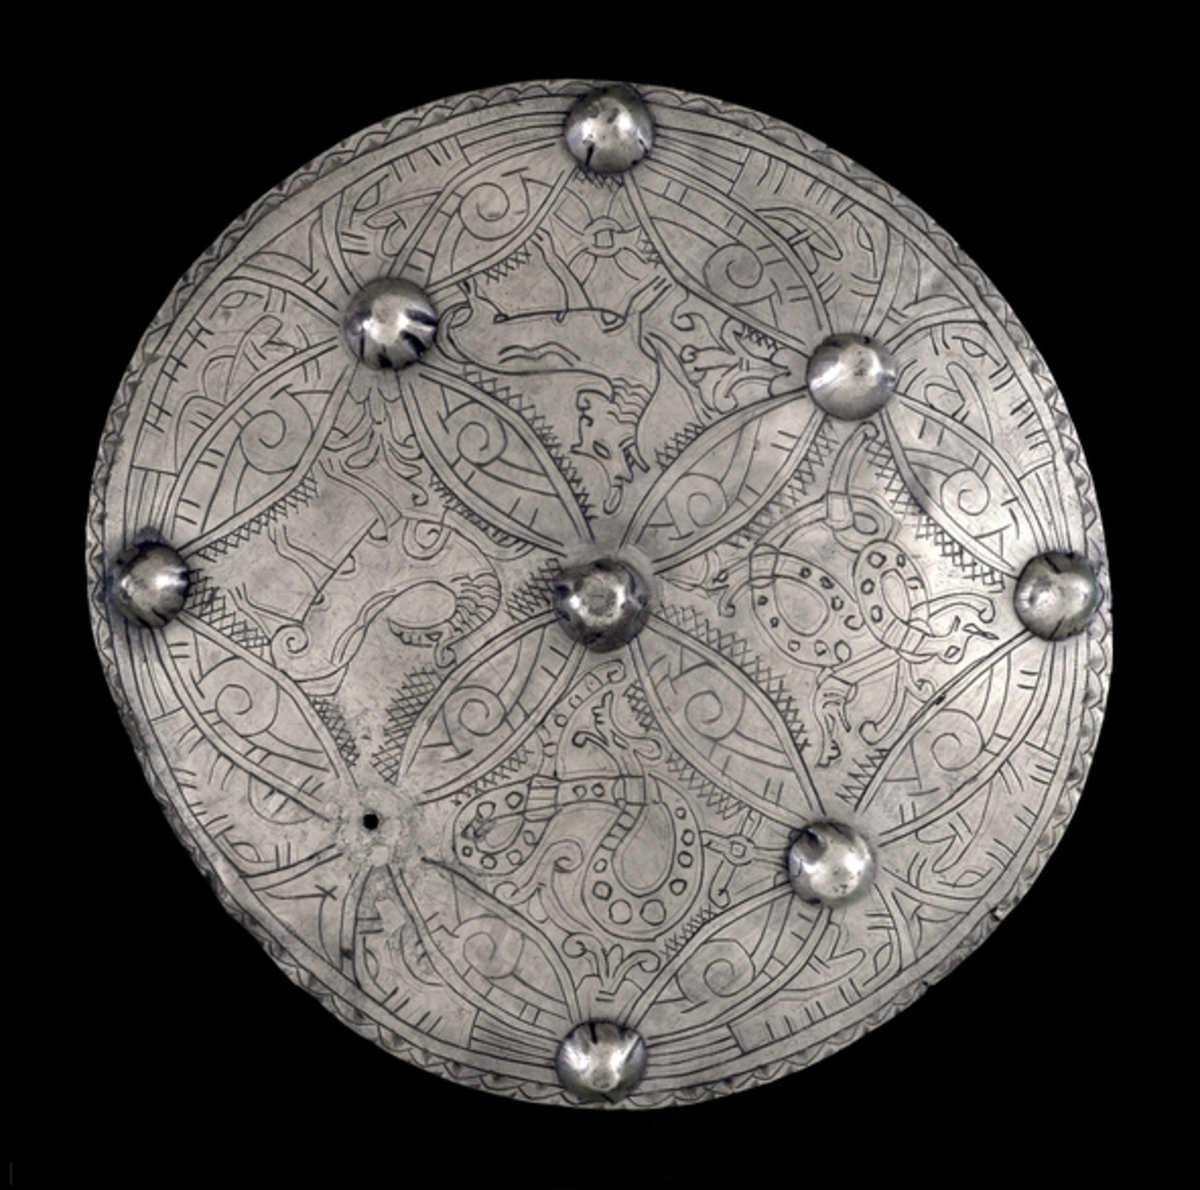 The Riddle of the Silver Brooch of Aedwen